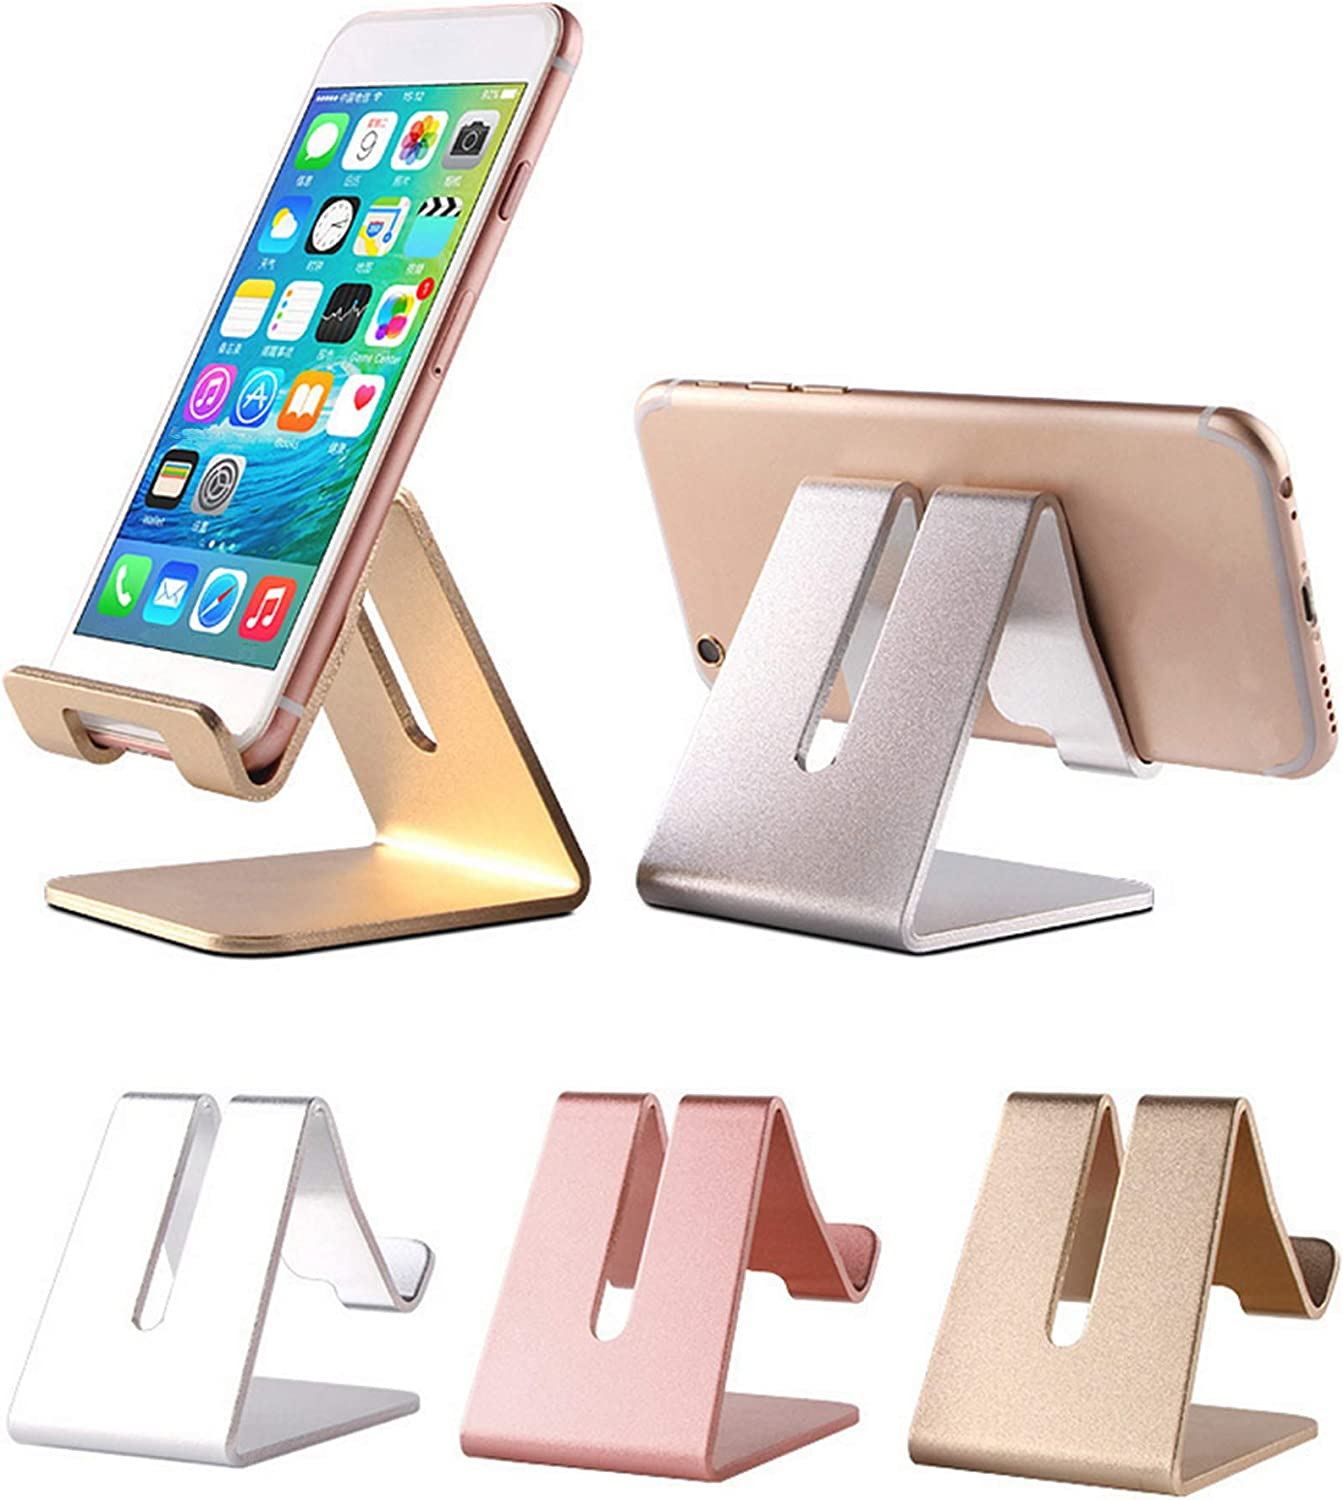 Soporte para Celular, Phone-Stand, Cell Phone-Holder, Home-Office Accessories, Desk Asseccories, Desk Gadgets Compatible with iPhone Charging Stand 11 Pro Xs Max Xr X 8 7 6 6s Plus, Switch Lite Stand